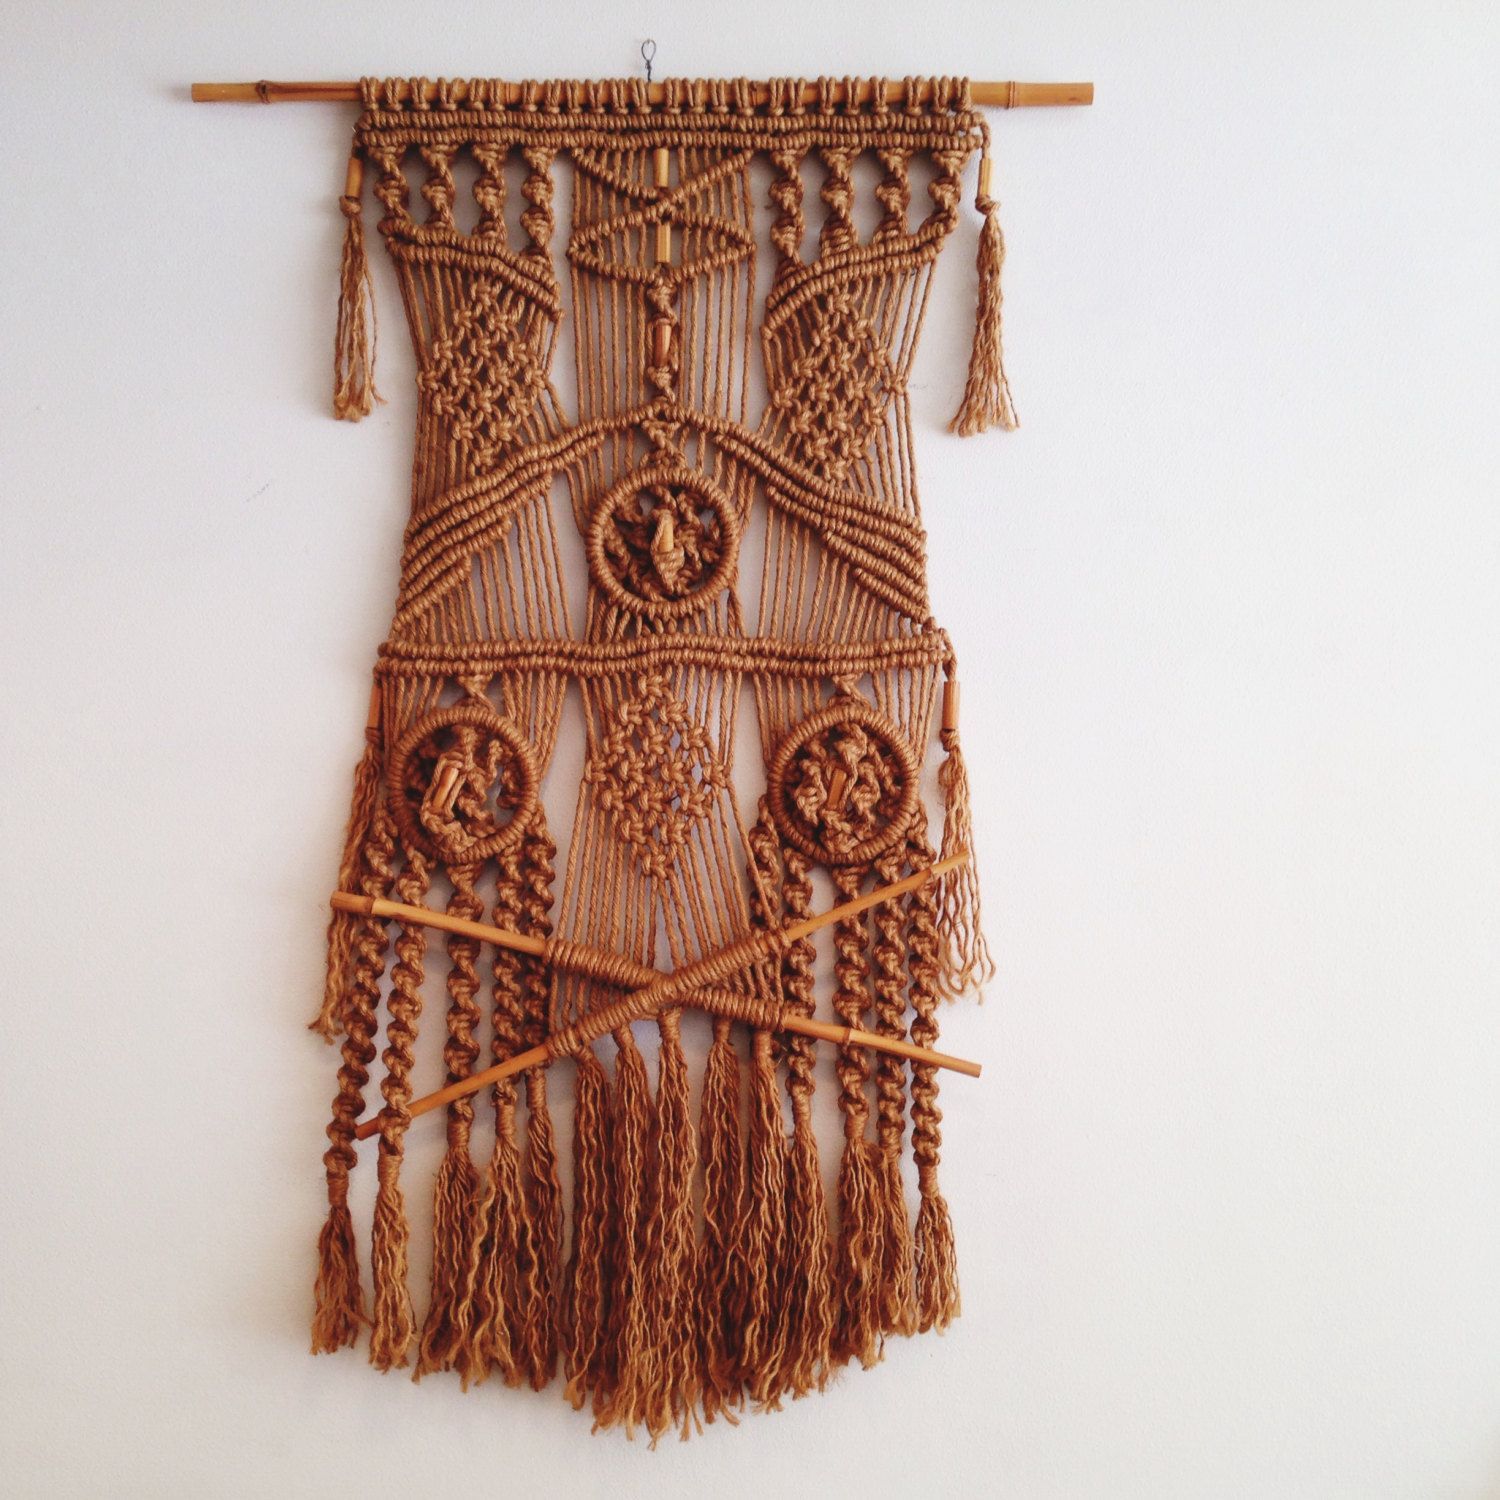 Giant Vintage 1970's Macrame Wall Hanging / Textile Piece